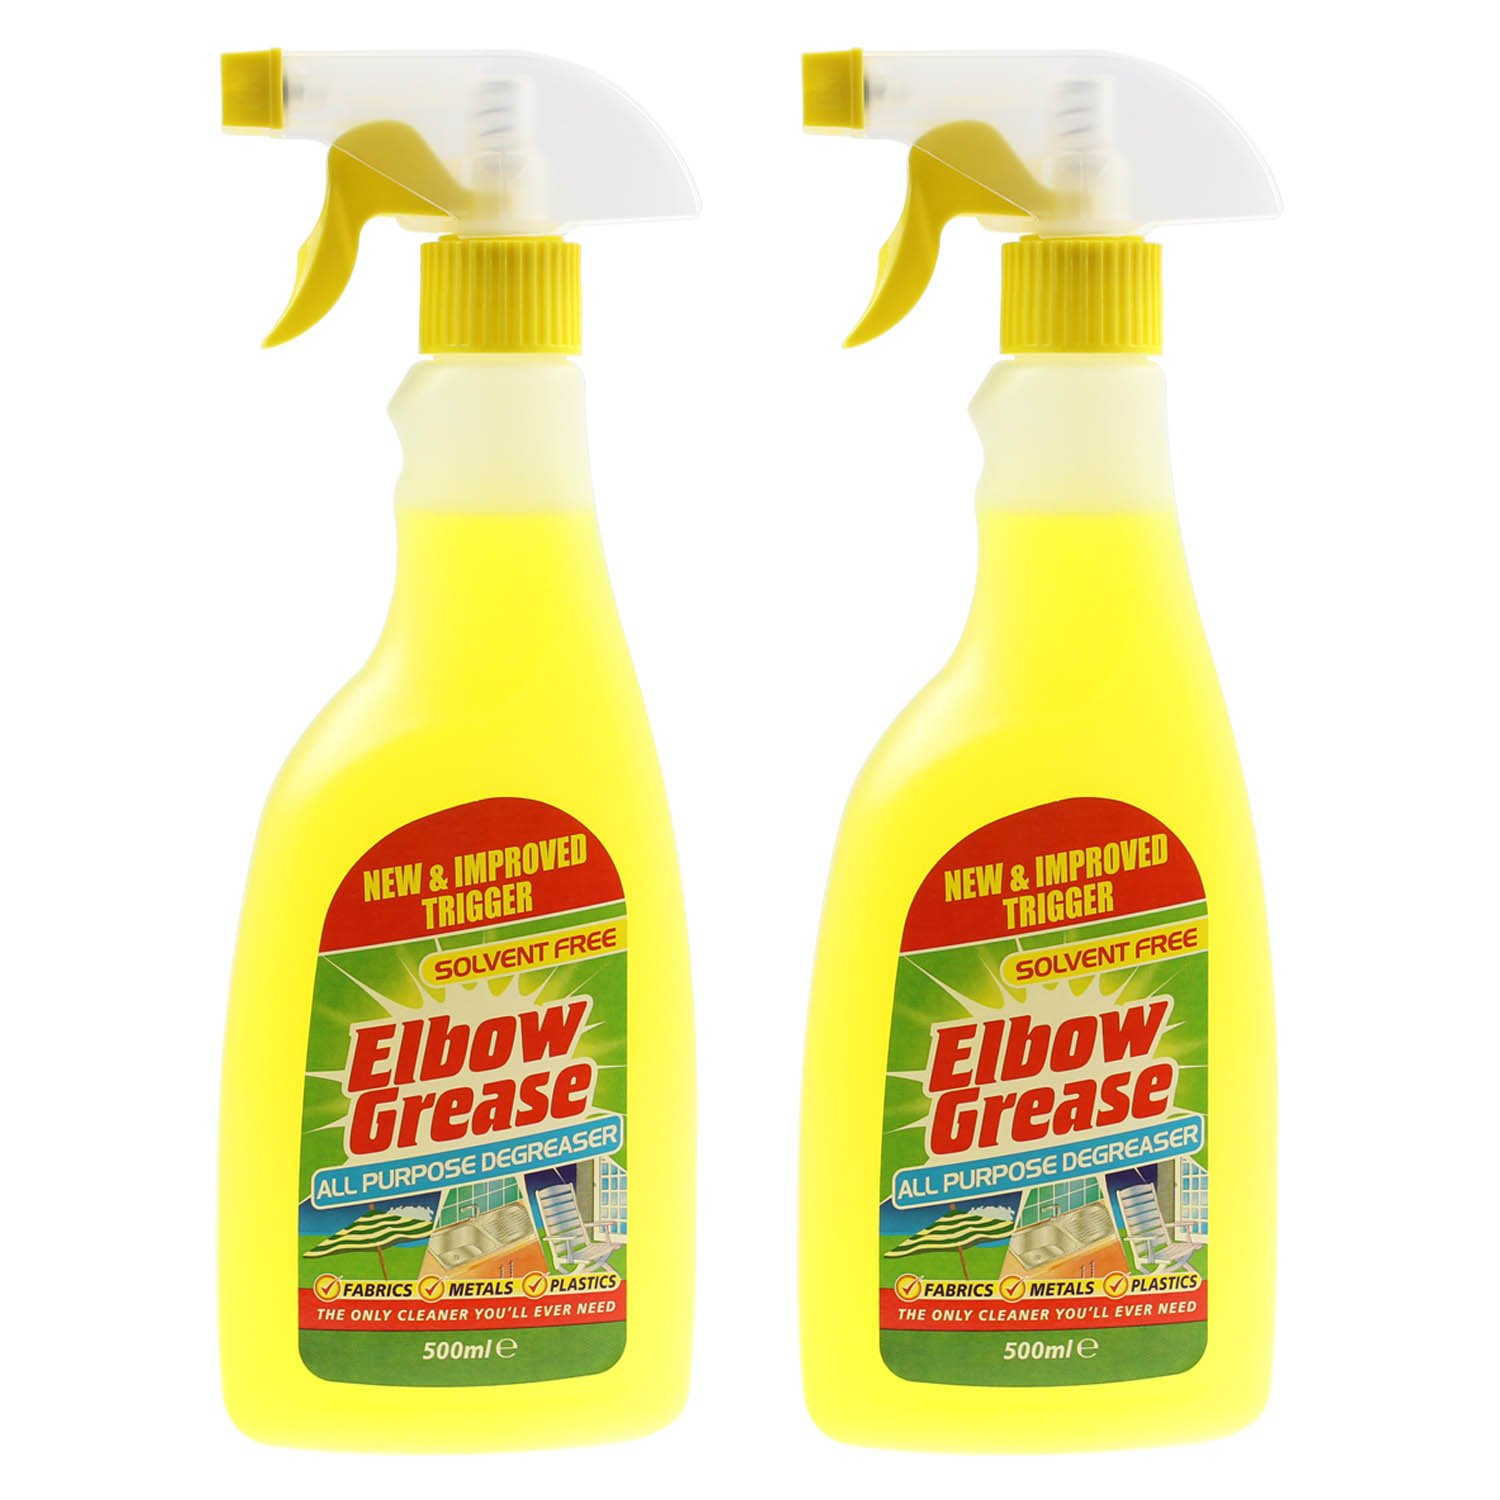 Elbow Grease 2x500ml All Purpose Kitchen Laundry Household Degreaser Cleaner Spray